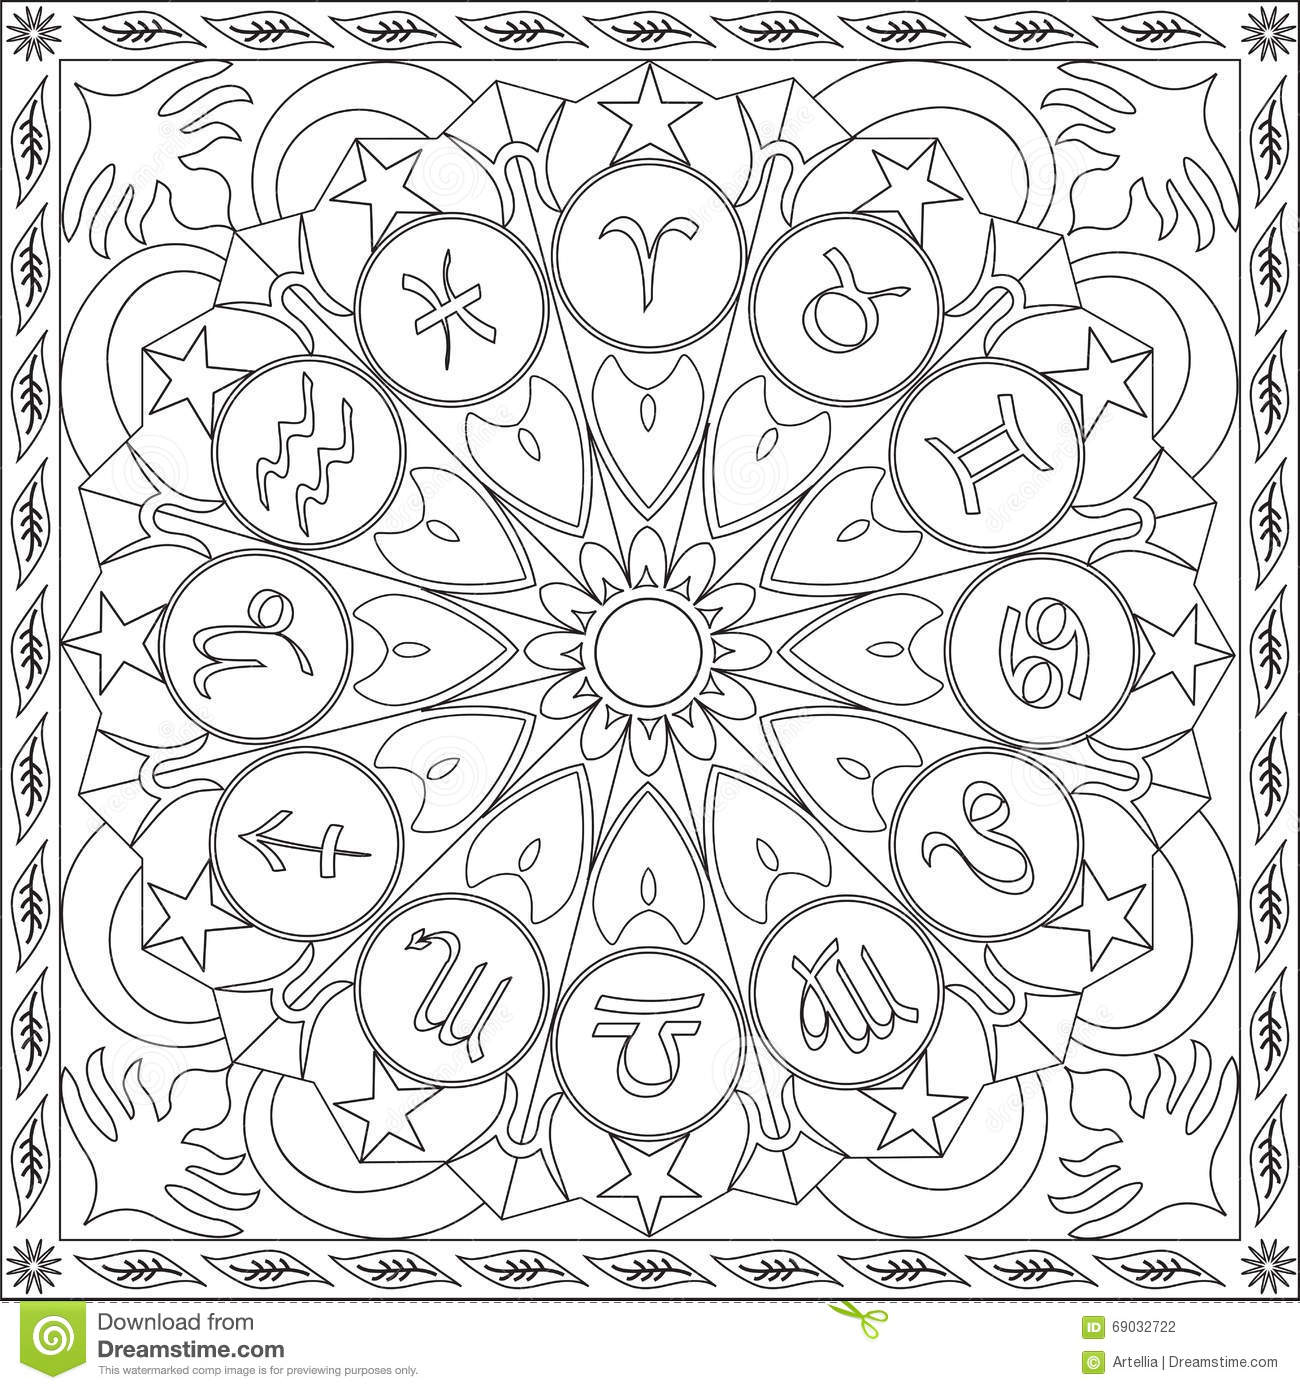 Free printable zodiac coloring pages - A Chance Peace Sign Coloring Mandala Lunar Coloring Sheet